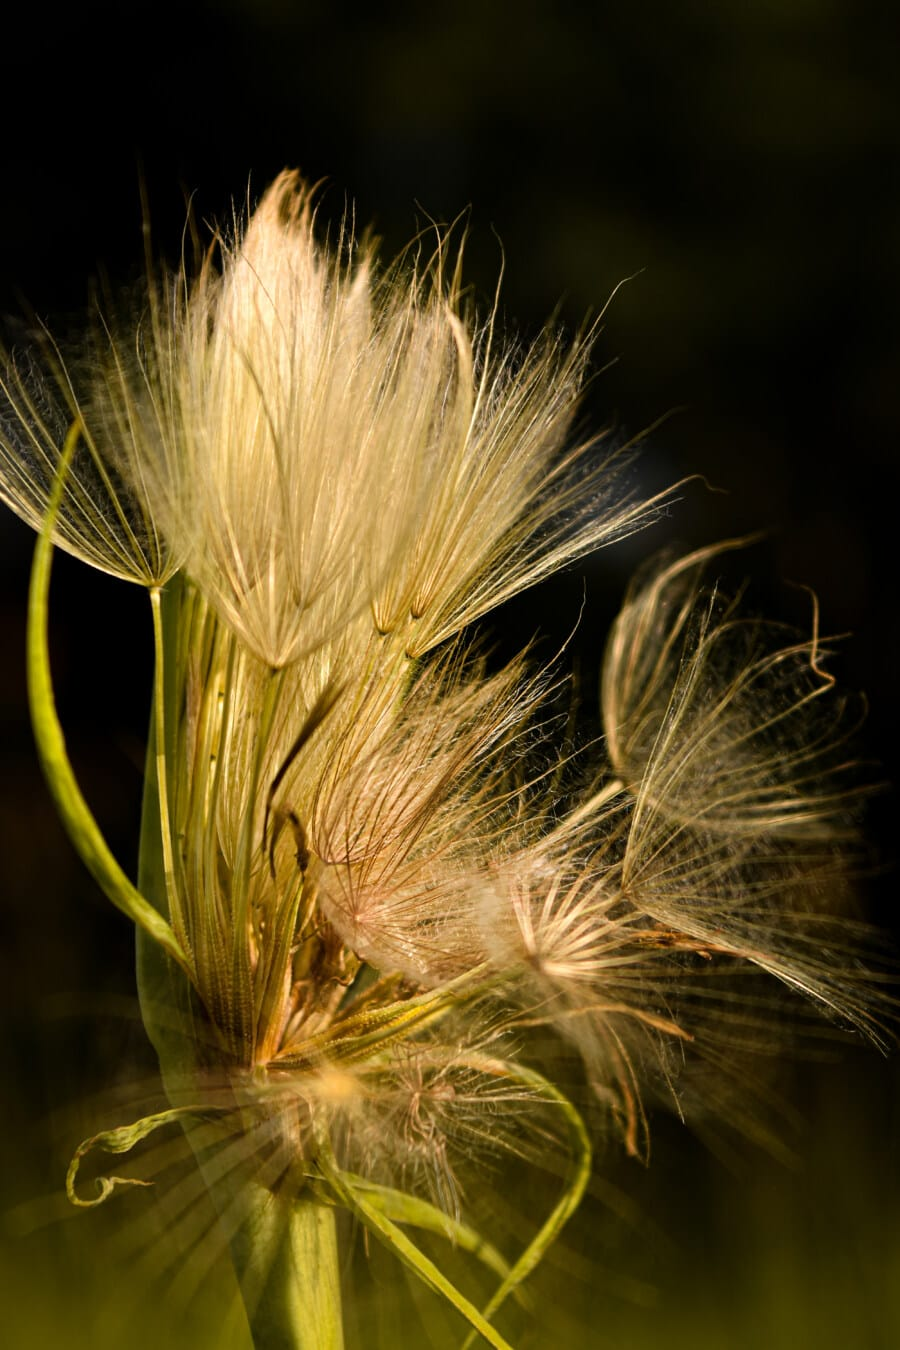 wildflower, close-up, stem, vertical, seed, nature, bright, color, rural, flora